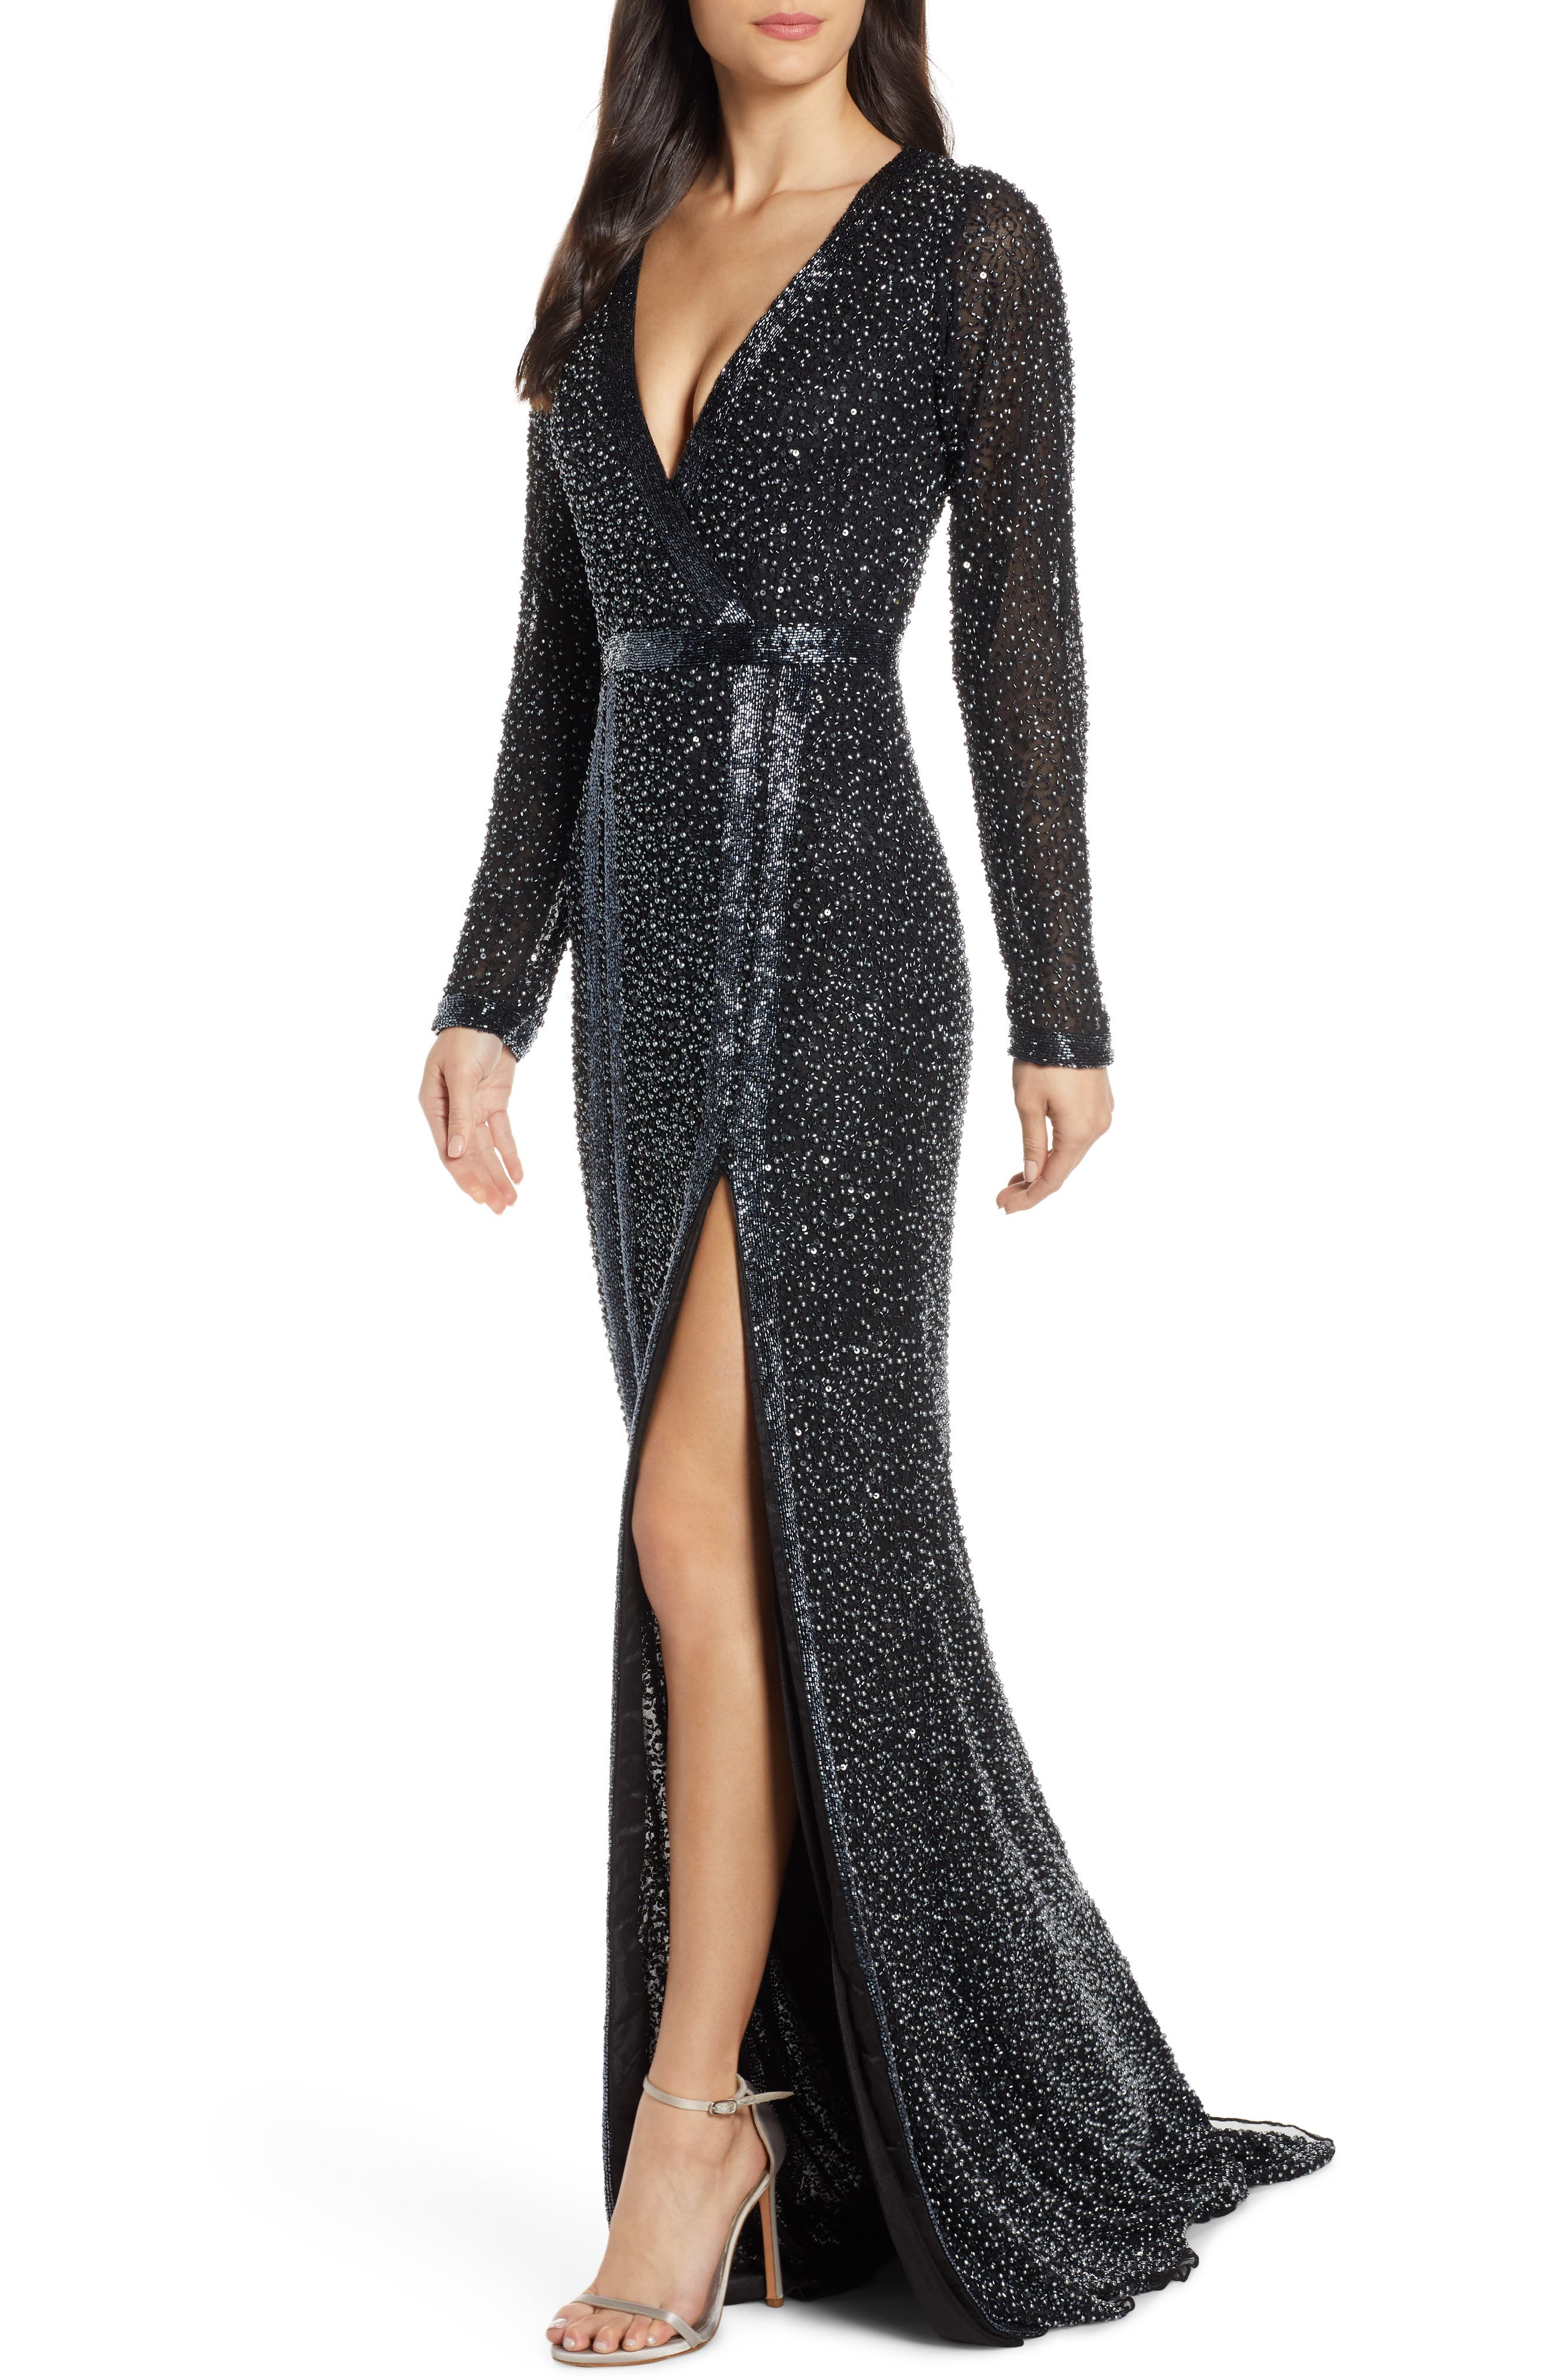 70s Prom, Formal, Evening, Party Dresses Womens MAC Duggal Long Sleeve Beaded Gown $598.00 AT vintagedancer.com